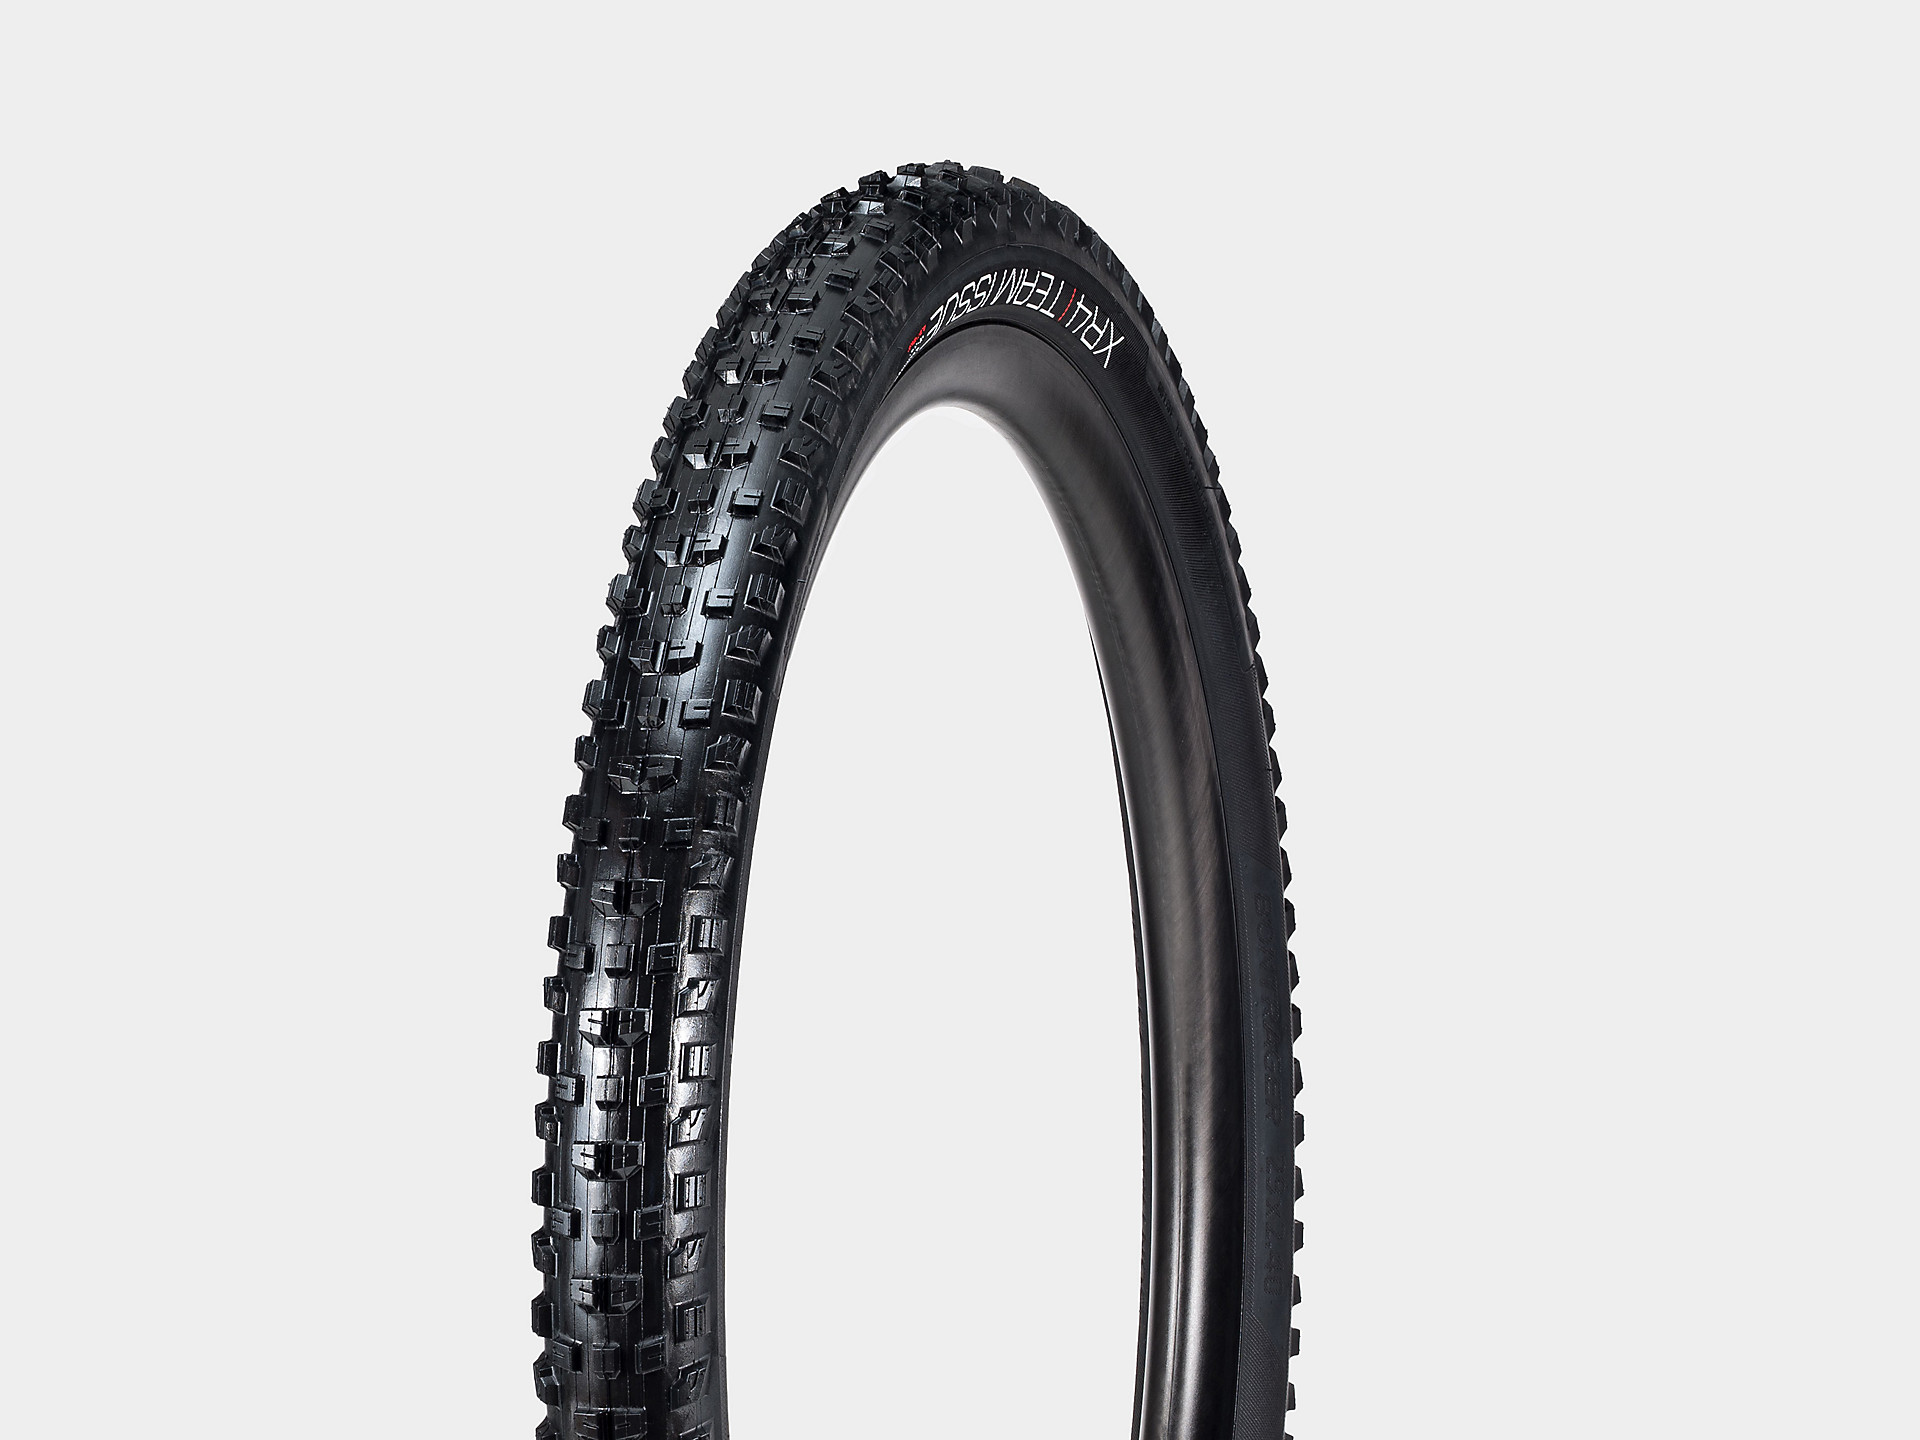 """Maxxis Minion DHF Tire 29x2.50/""""WT DH Casing 120 TPI Tubeless Tire"""